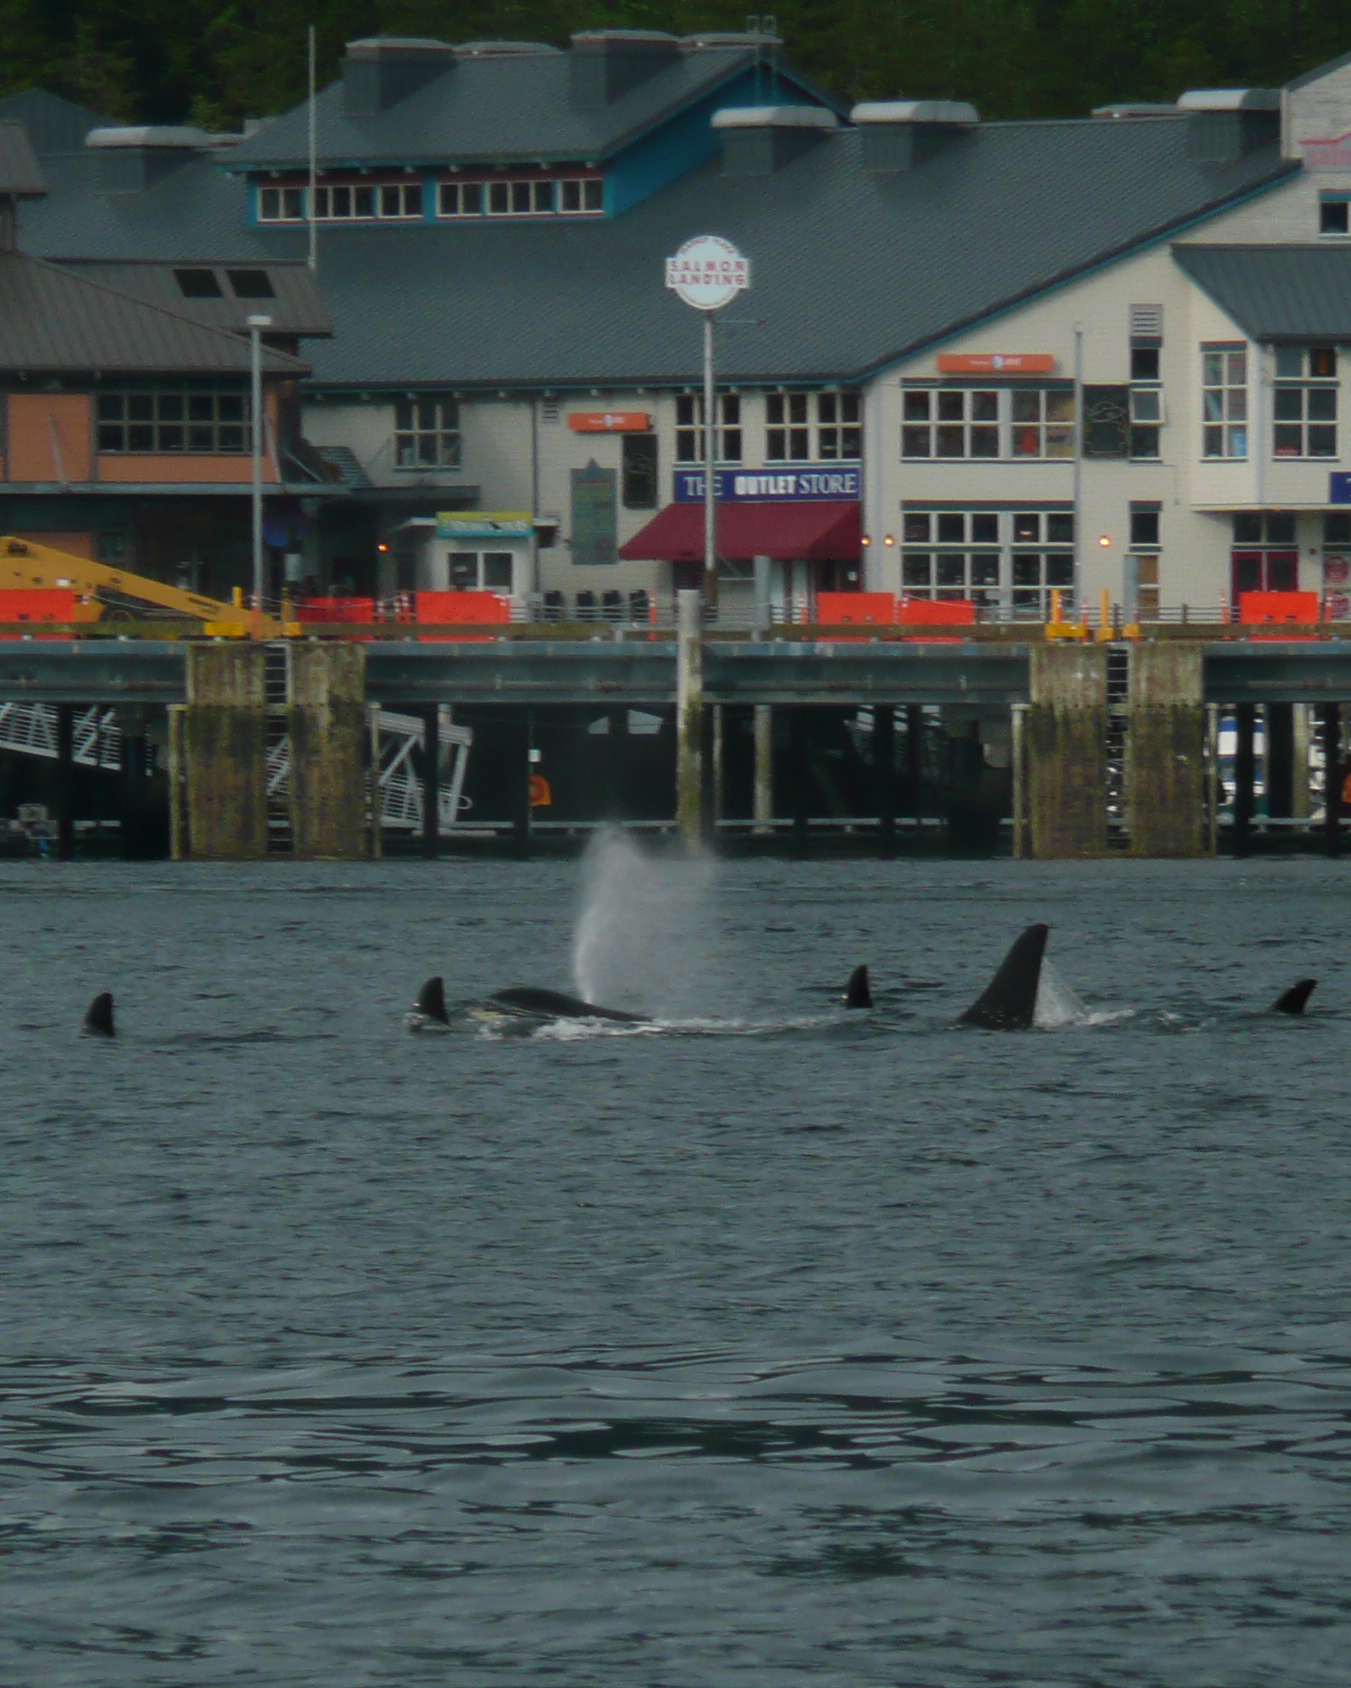 We never know when the orcas will visit. Resident pods of orcas are often seen right from the dock in downtwon Ketchikan.